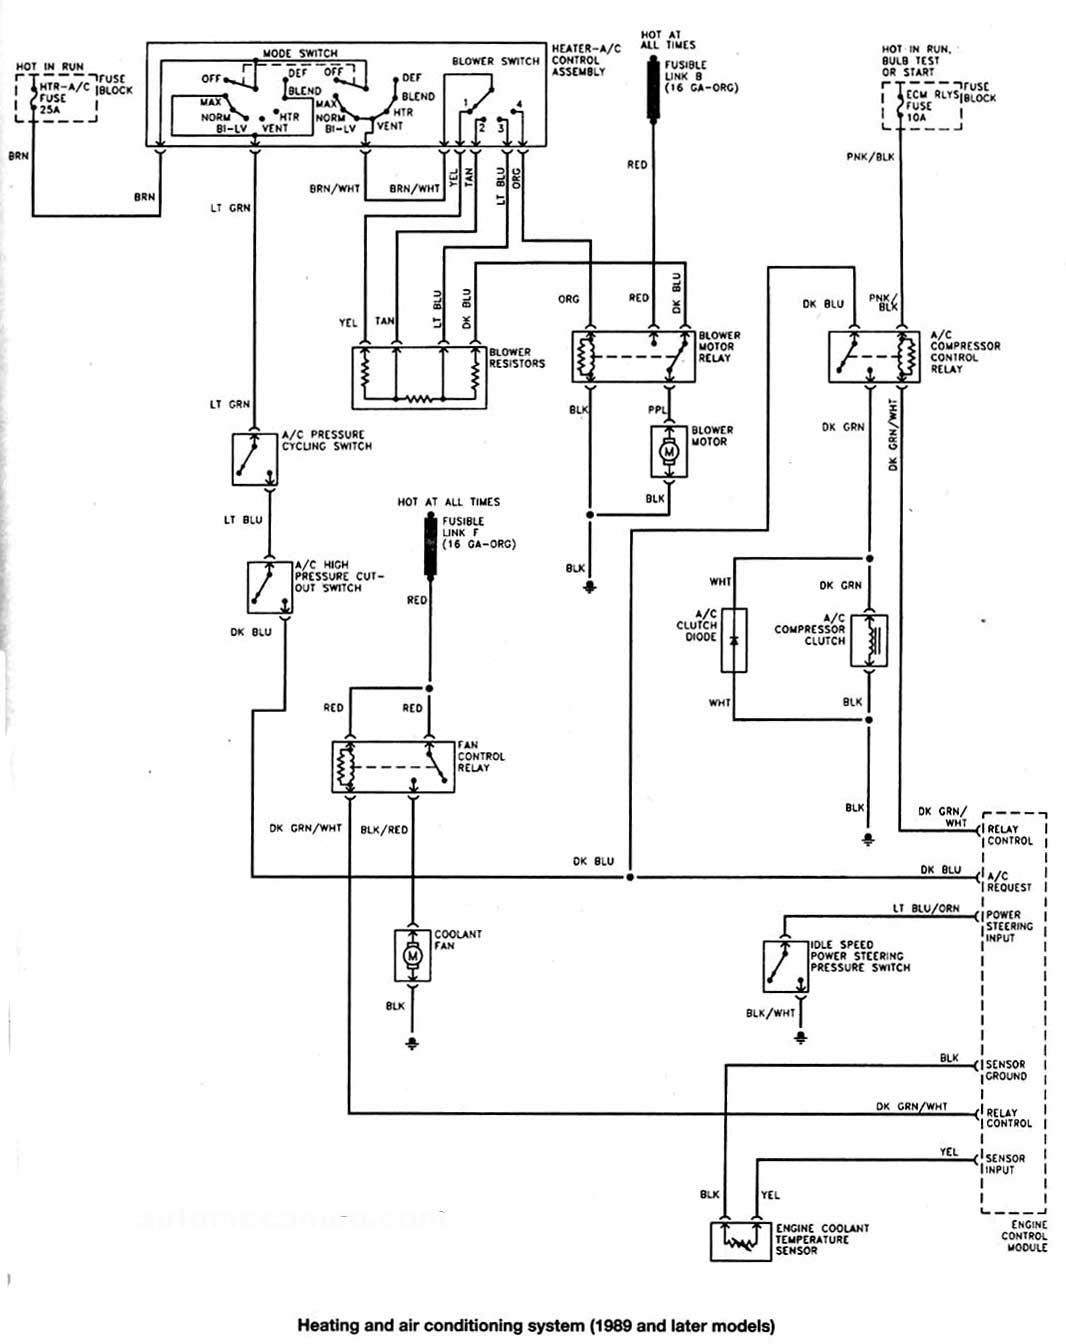 2003 chrysler voyager wiring diagram  chrysler  auto parts